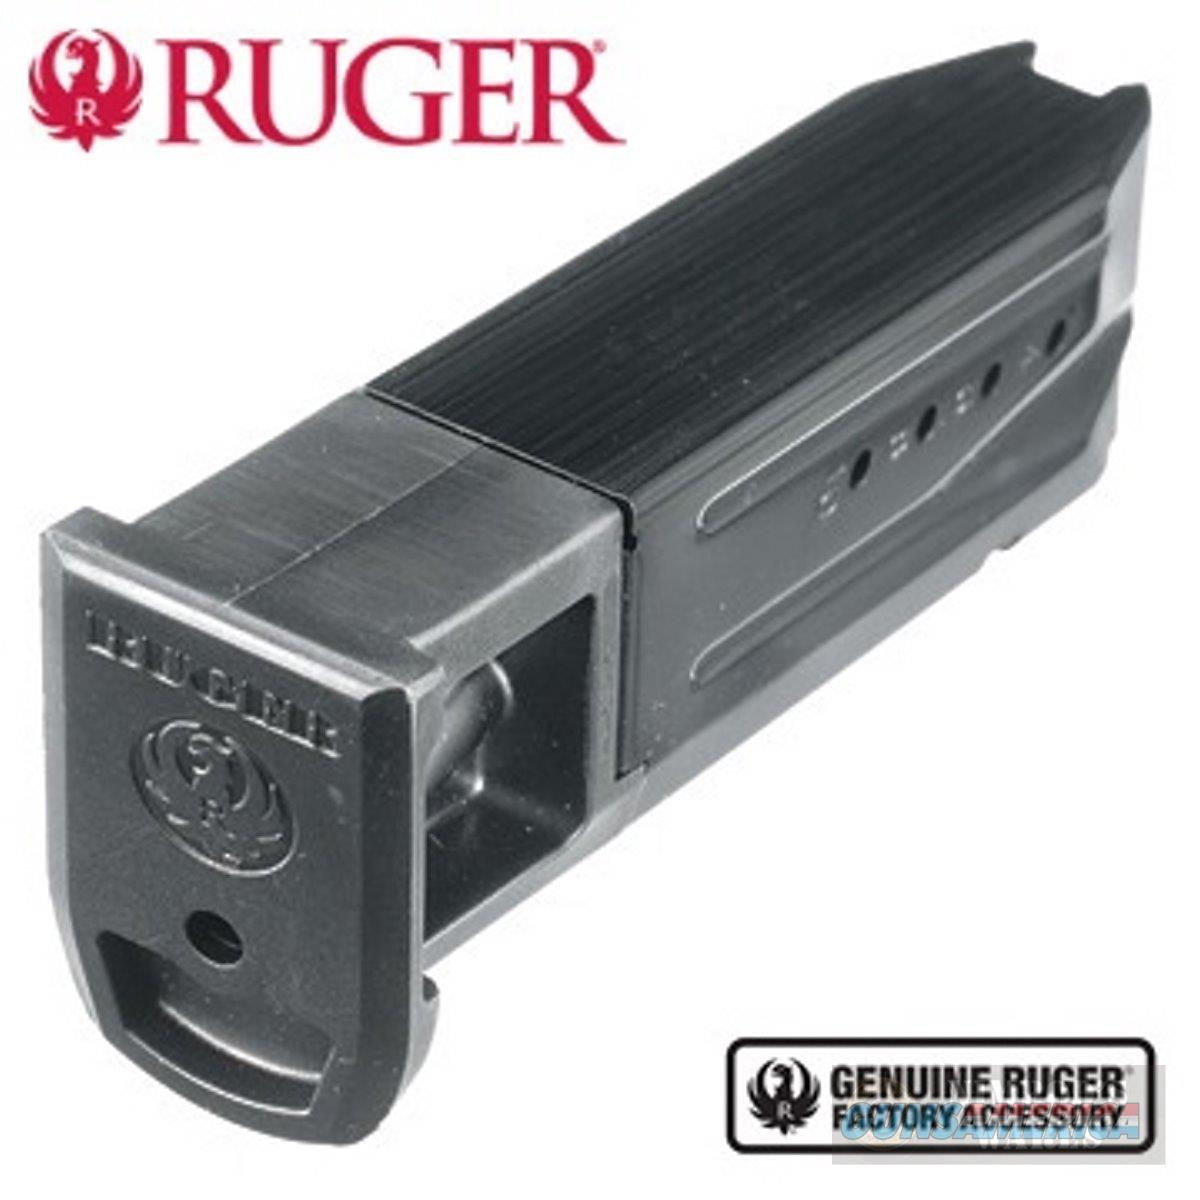 Ruger P19/10 SR9 Magazine 9mm Blue 10Rd New Factory SR-9  Non-Guns > Magazines & Clips > Pistol Magazines > Other